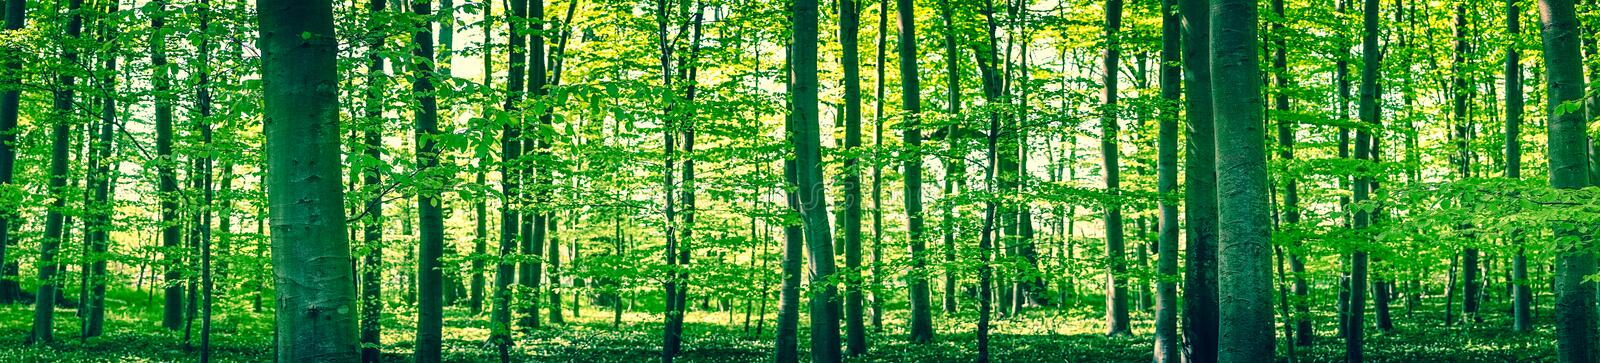 Panorama landscape of a beech forest royalty free stock photo